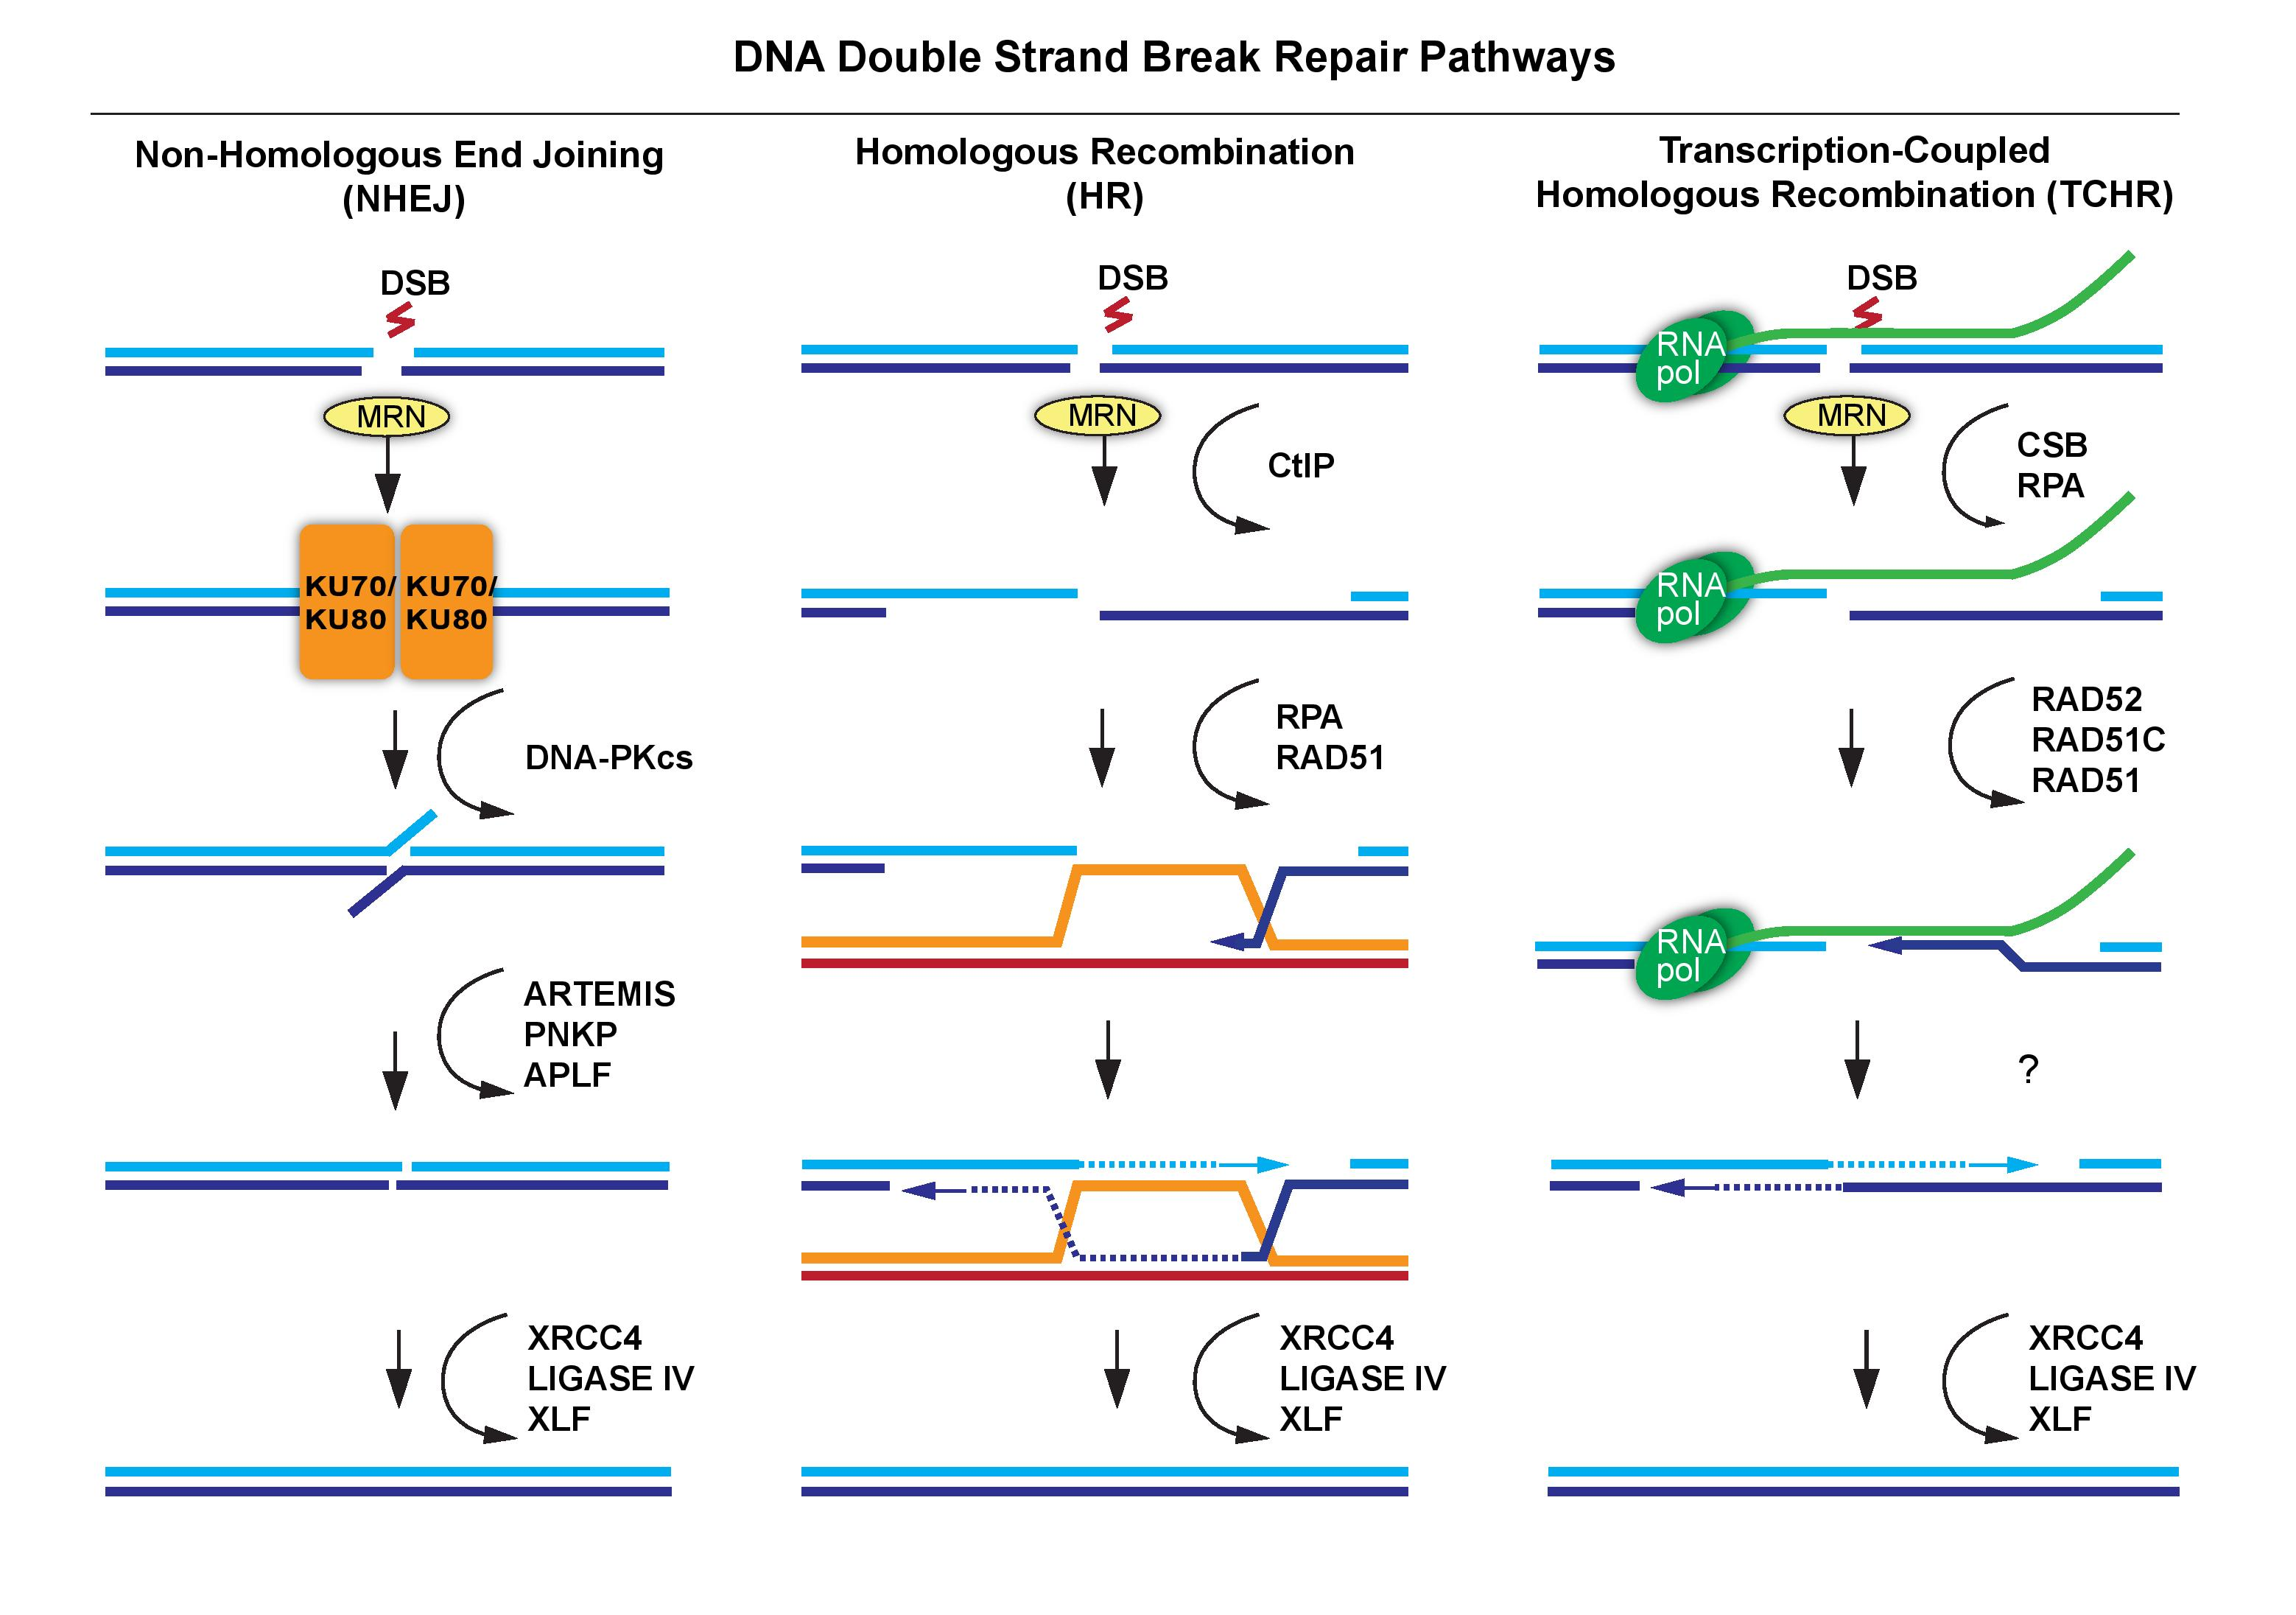 Figure 1. Canonical DNA Double Strand Break Repair Pathways. Non-homologous End Joining (NHEJ) repair (Left) involves the recognition of the DSB by the MRE11-RAD50-NBS1 (MRN) (Kim et al., 2005) complex which facilitates recognition of DNA ends by the Ku70/Ku80 heterodimer.  The Ku70/Ku80 heterodimer prevents end resection and hold DNA ends in close proximity.  Next, the recruitment of DNA-dependent protein Kinase (DNA-PKcs) activates DNA end-processing effectors ARTEMIS, Polynucleotide kinase/phosphatase (PNKP) and Aprataxin and PNKP Like Factor (APLF).  Processed DNA ends are then ligated by a DNA ligase IV complex containing X-Ray Repair Complementing Defective Repair In Chinese Hamster Cells 4 (XRCC4), and XRCC4-Like Factor (XLF, also known as Non-Homologous End Joining Factor 1 (NHEJ1)) (reviewed in Dabin et al., 2016; McKinnon, 2009). Homologous Recombination (HR) repair (center) involves the recognition of the DSB by the MRE11-RAD50-NBS1 (MRN) complex followed by end-resection mediated by BRCA1 C-Terminal interacting protein (CtIP) (Takeda et al., 2007). In dividing cells, 3' single stranded DNA is bound by replication protein A (RPA) and Rad51 recombinase, which facilitate strand invasion and homology search of the sister chromatid (pictured) (Helleday et al., 2007). Following strand complementation, DNA ends are ligated by the XRCC4/XLF/DNA ligase IV complex. Transcription-Coupled Homologous Recombination (TCHR) repair (right). In G0/G1 cells, actively transcribed loci can also utilize HR repair by using RNA as a template. Following recognition of the MRN complex, TCHR repair is known to require the ATPase activity of Cockayne Syndrome B (CSB) followed by RPA loading to protect single stranded DNA. RNA-templated DNA repair then requires the loading of repair factors Rad51, Rad51C and Rad52/BRCA2, which utilize RNA as the template for DNA repair (Ohle et al., 2016; Wei et al., 2015, 2016a).  Final end ligation of newly synthesized DNA is likely mediated by the same XRCC4/XLF/DNA ligase IV complex.